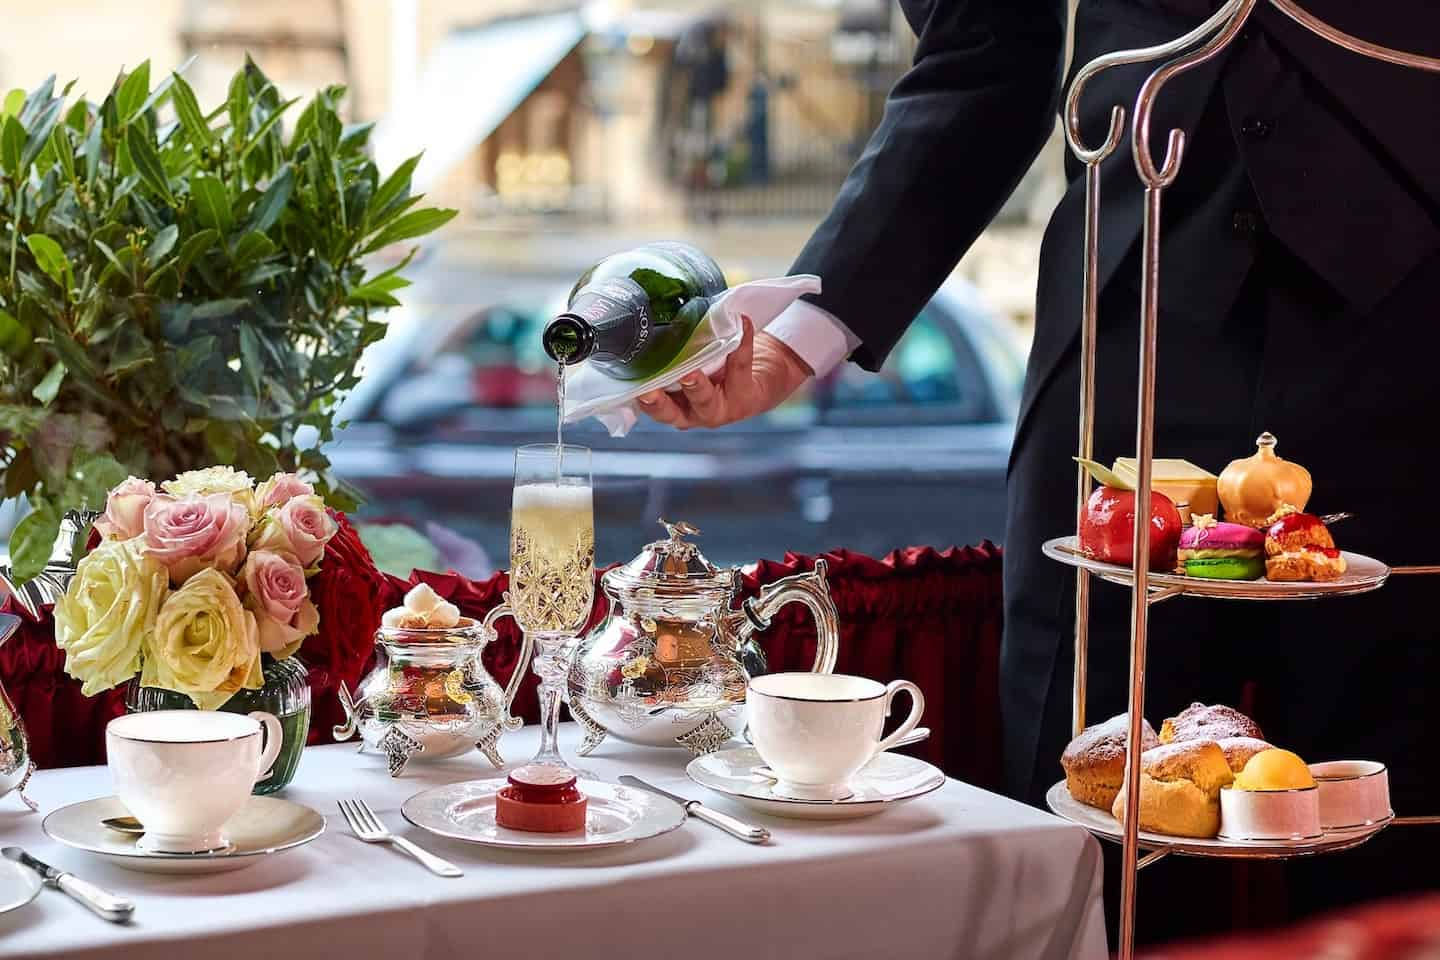 Best Dog-friendly Afternoon Teas in London - Rubens at The Palace